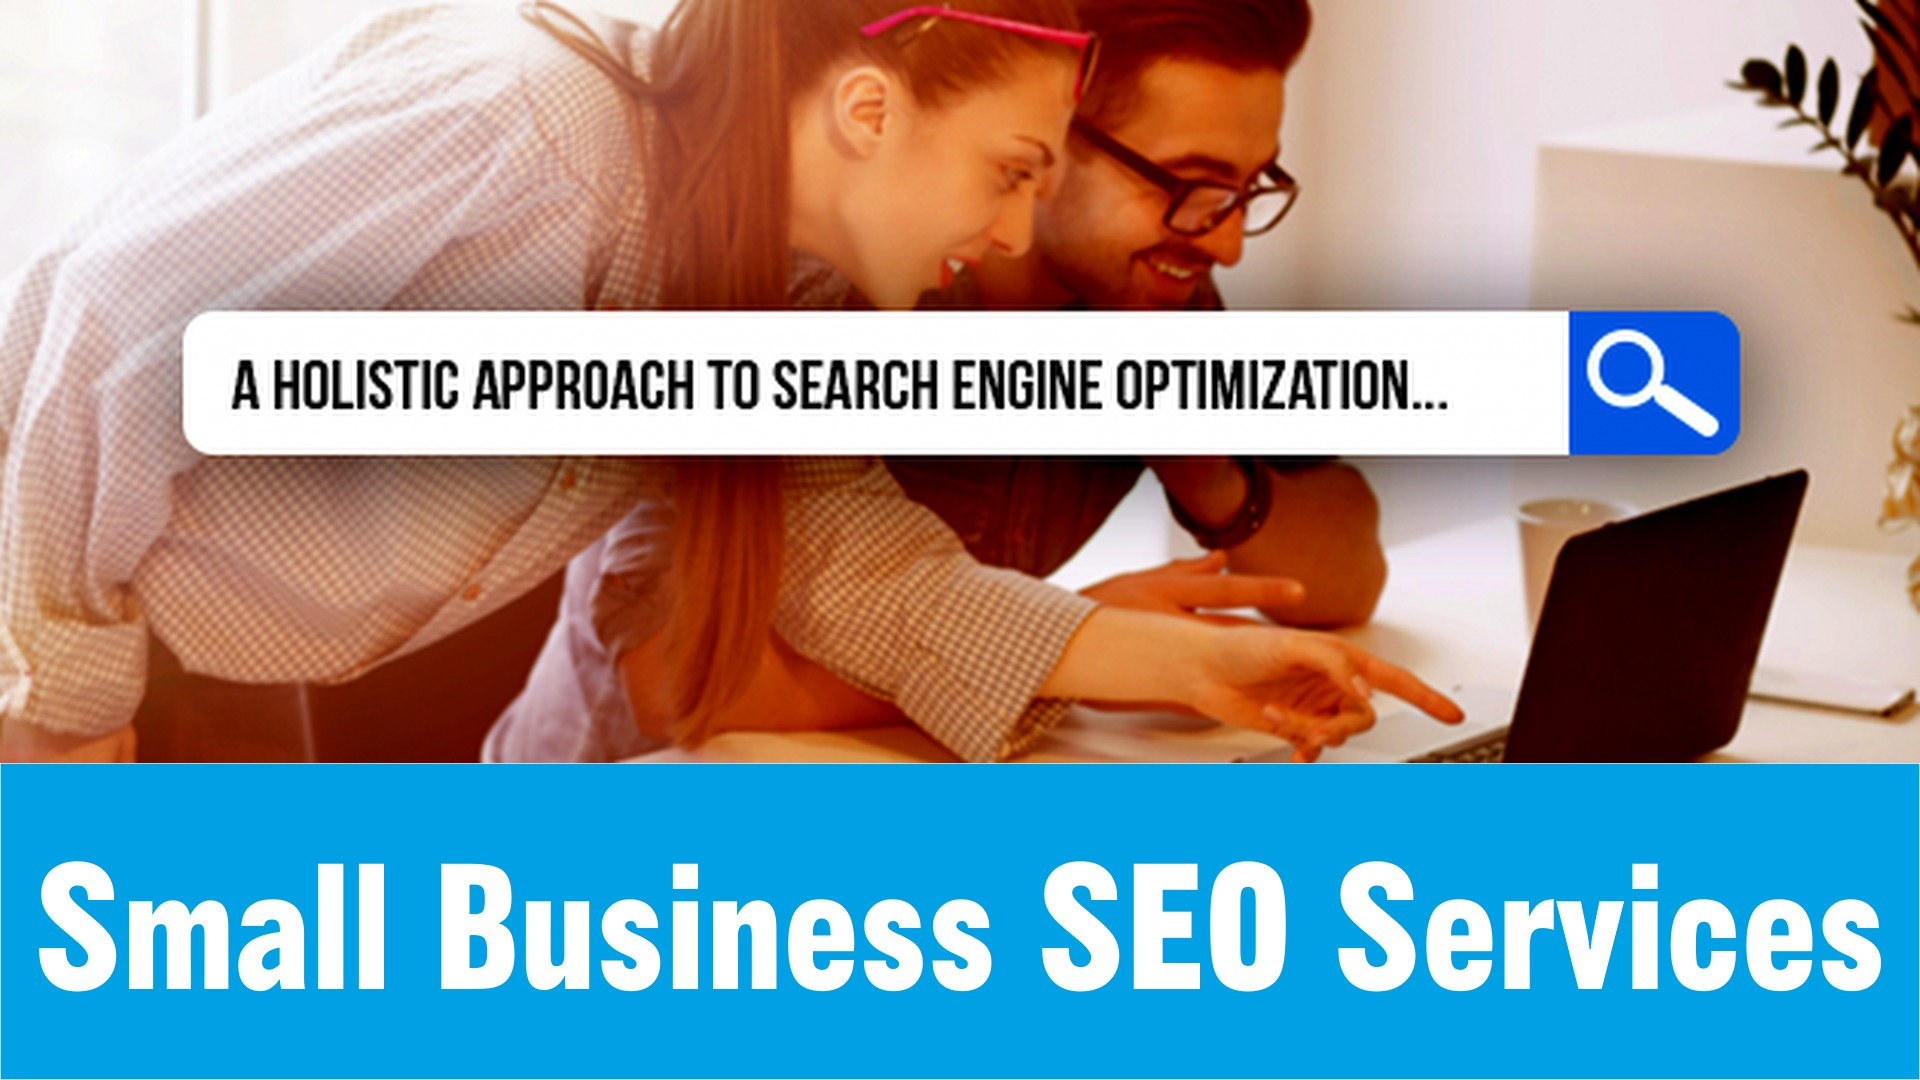 Small Business SEO-A Holistic Approach to Killer Content for Your Audience - Dallas Media Production